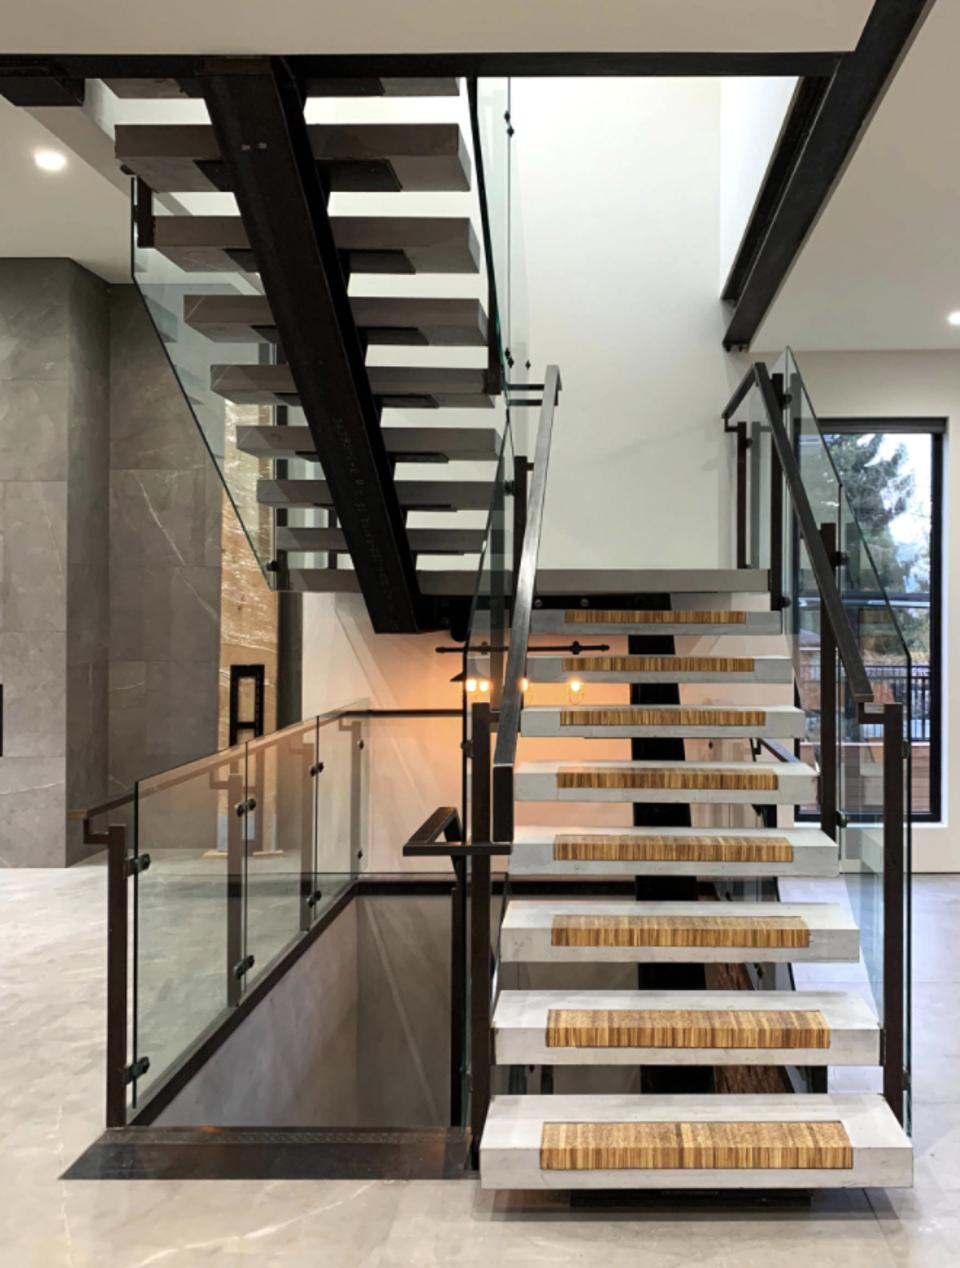 A Staircase with ChopValue inserts